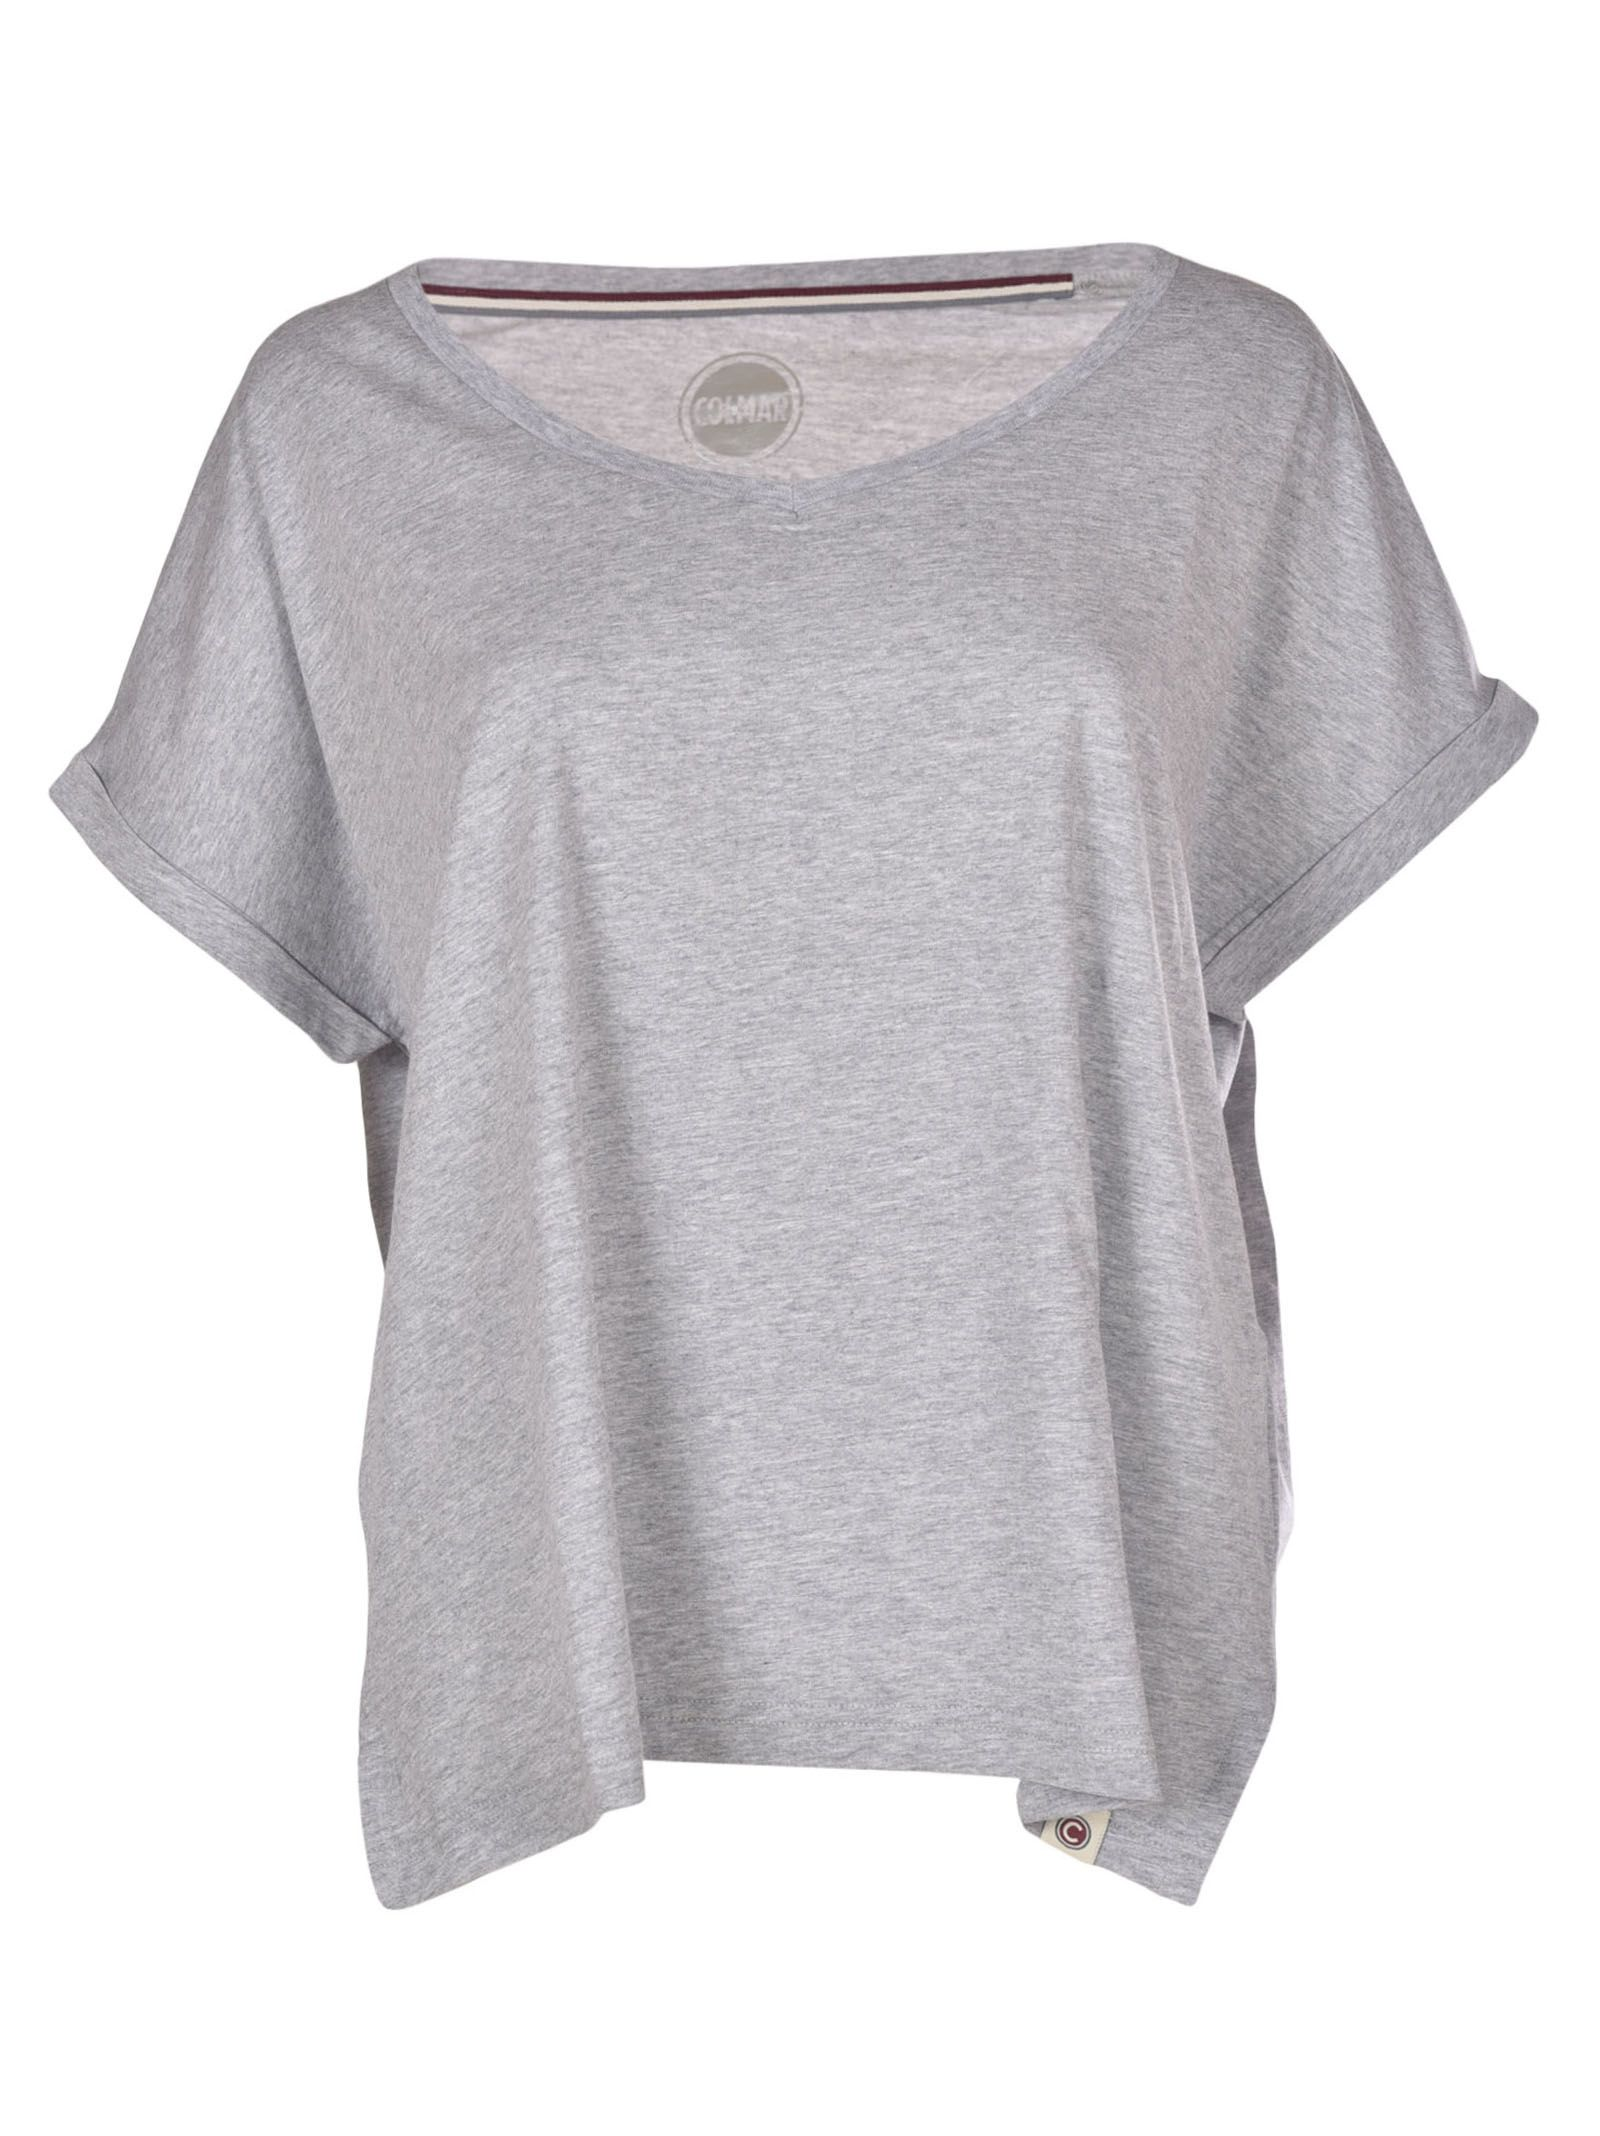 Colmar Round Neck T-shirt